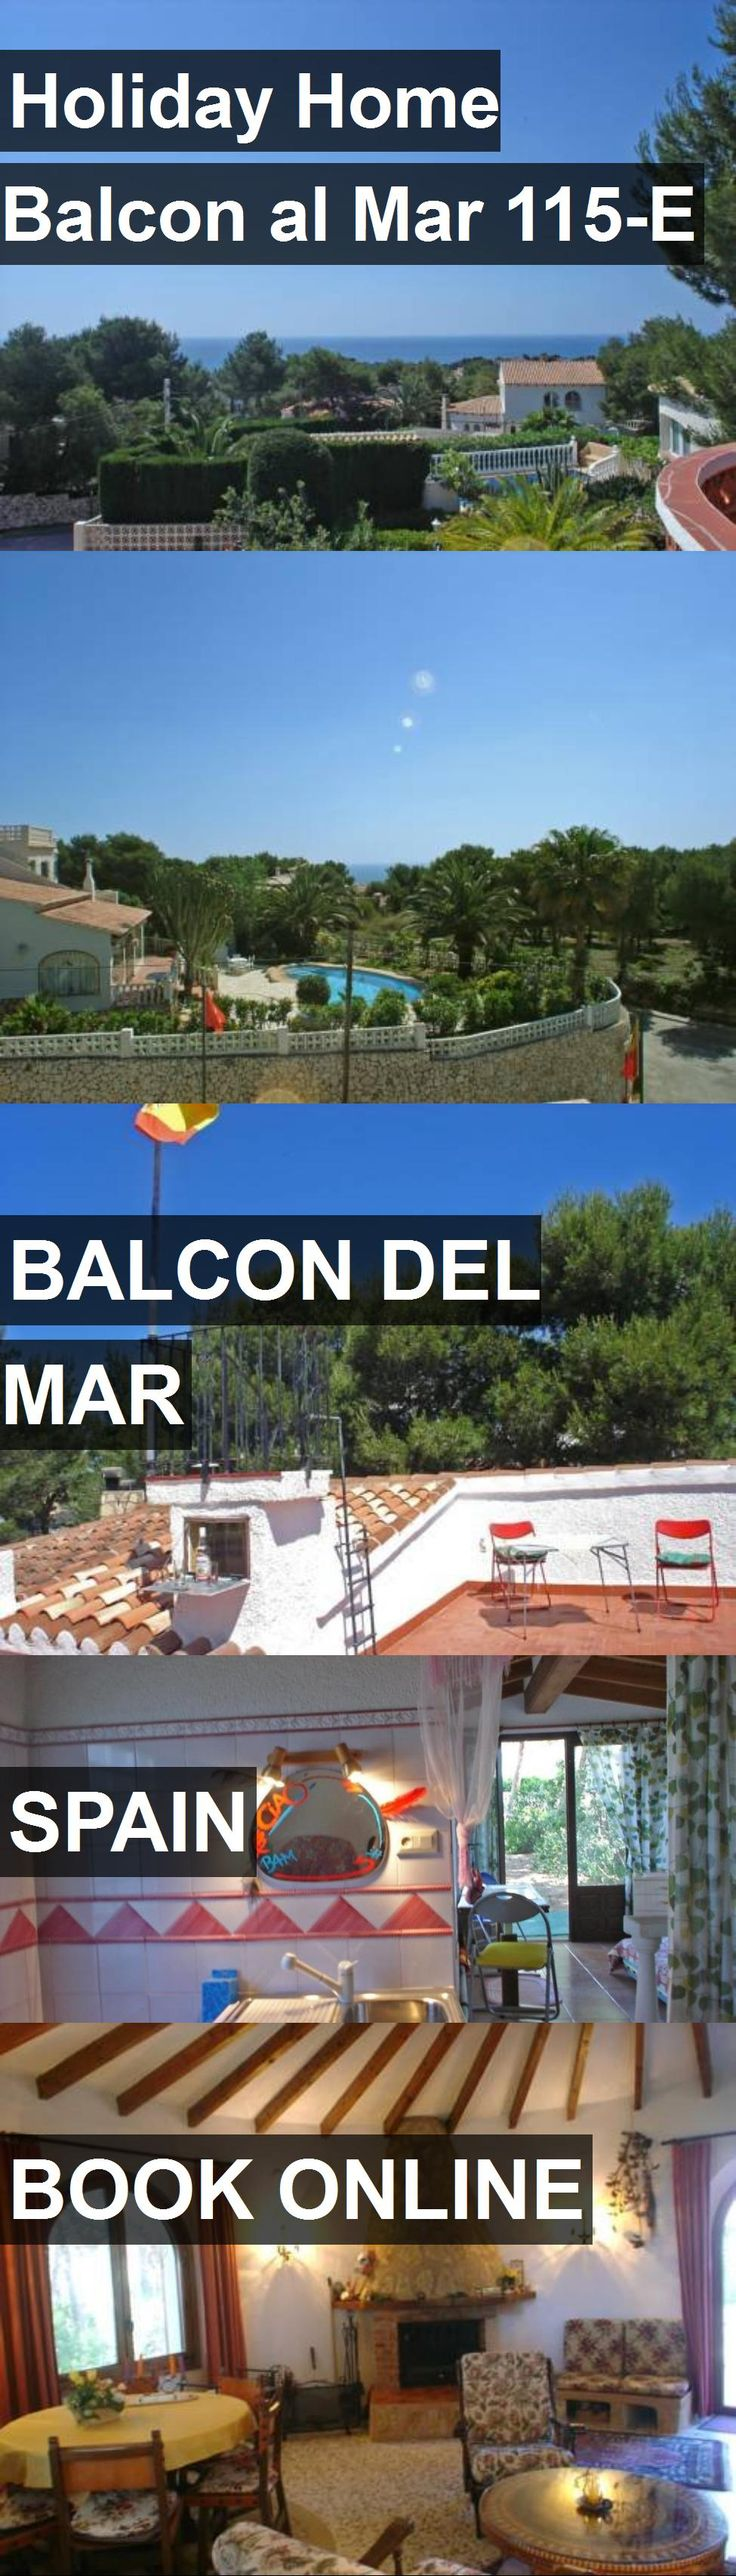 Hotel Holiday Home Balcon al Mar 115-E in Balcon del Mar, Spain. For more information, photos, reviews and best prices please follow the link. #Spain #BalcondelMar #hotel #travel #vacation